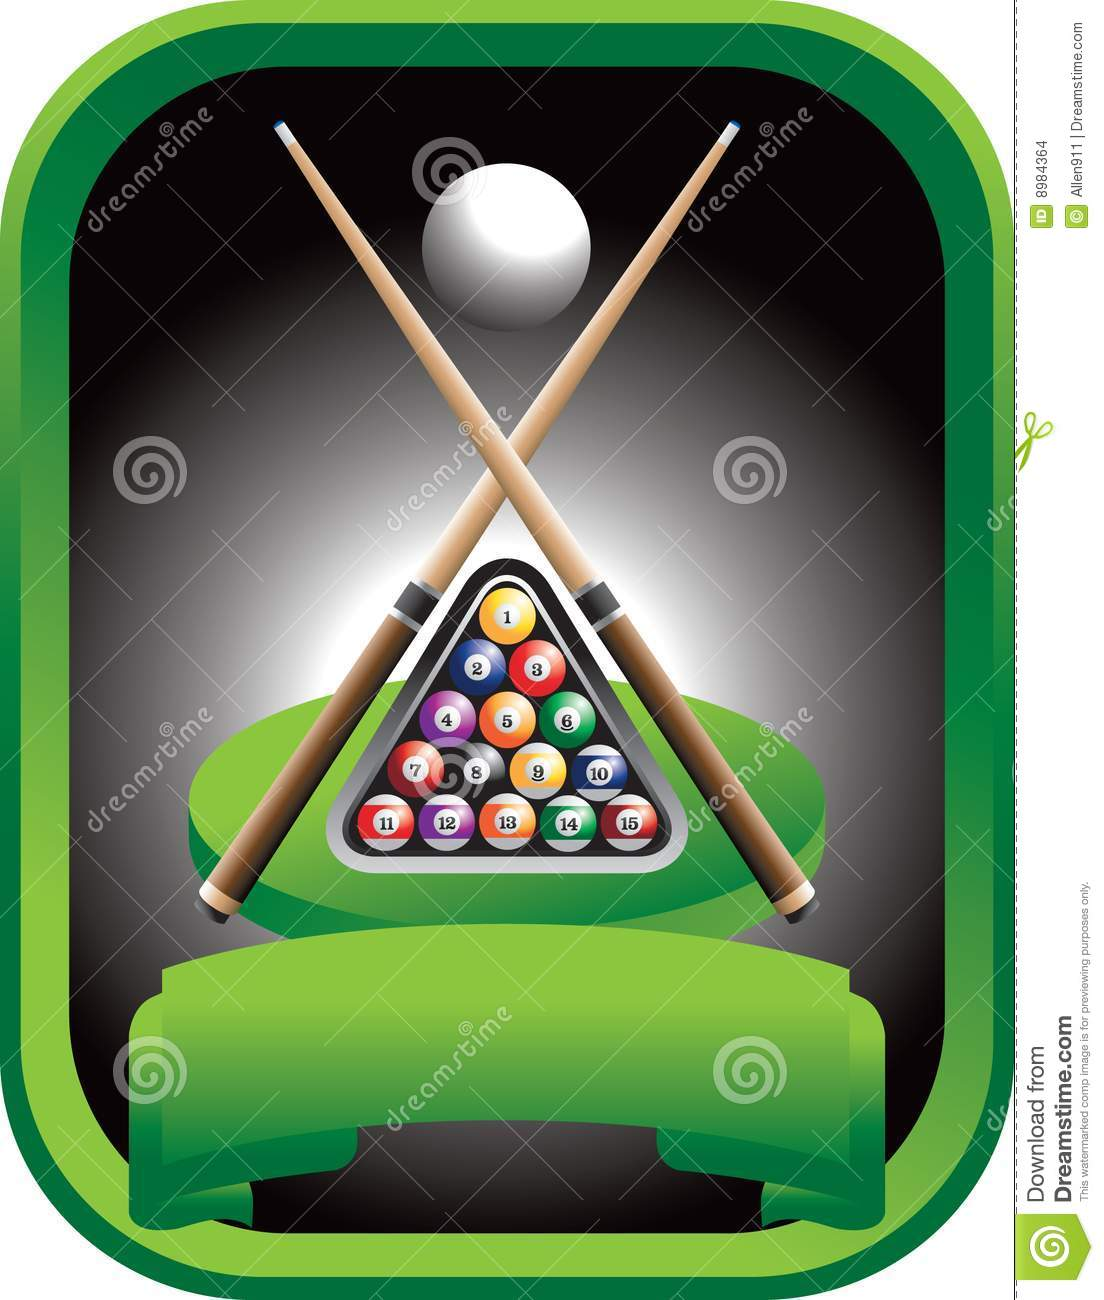 Pool Tournament Stock Images - Image: 8984364